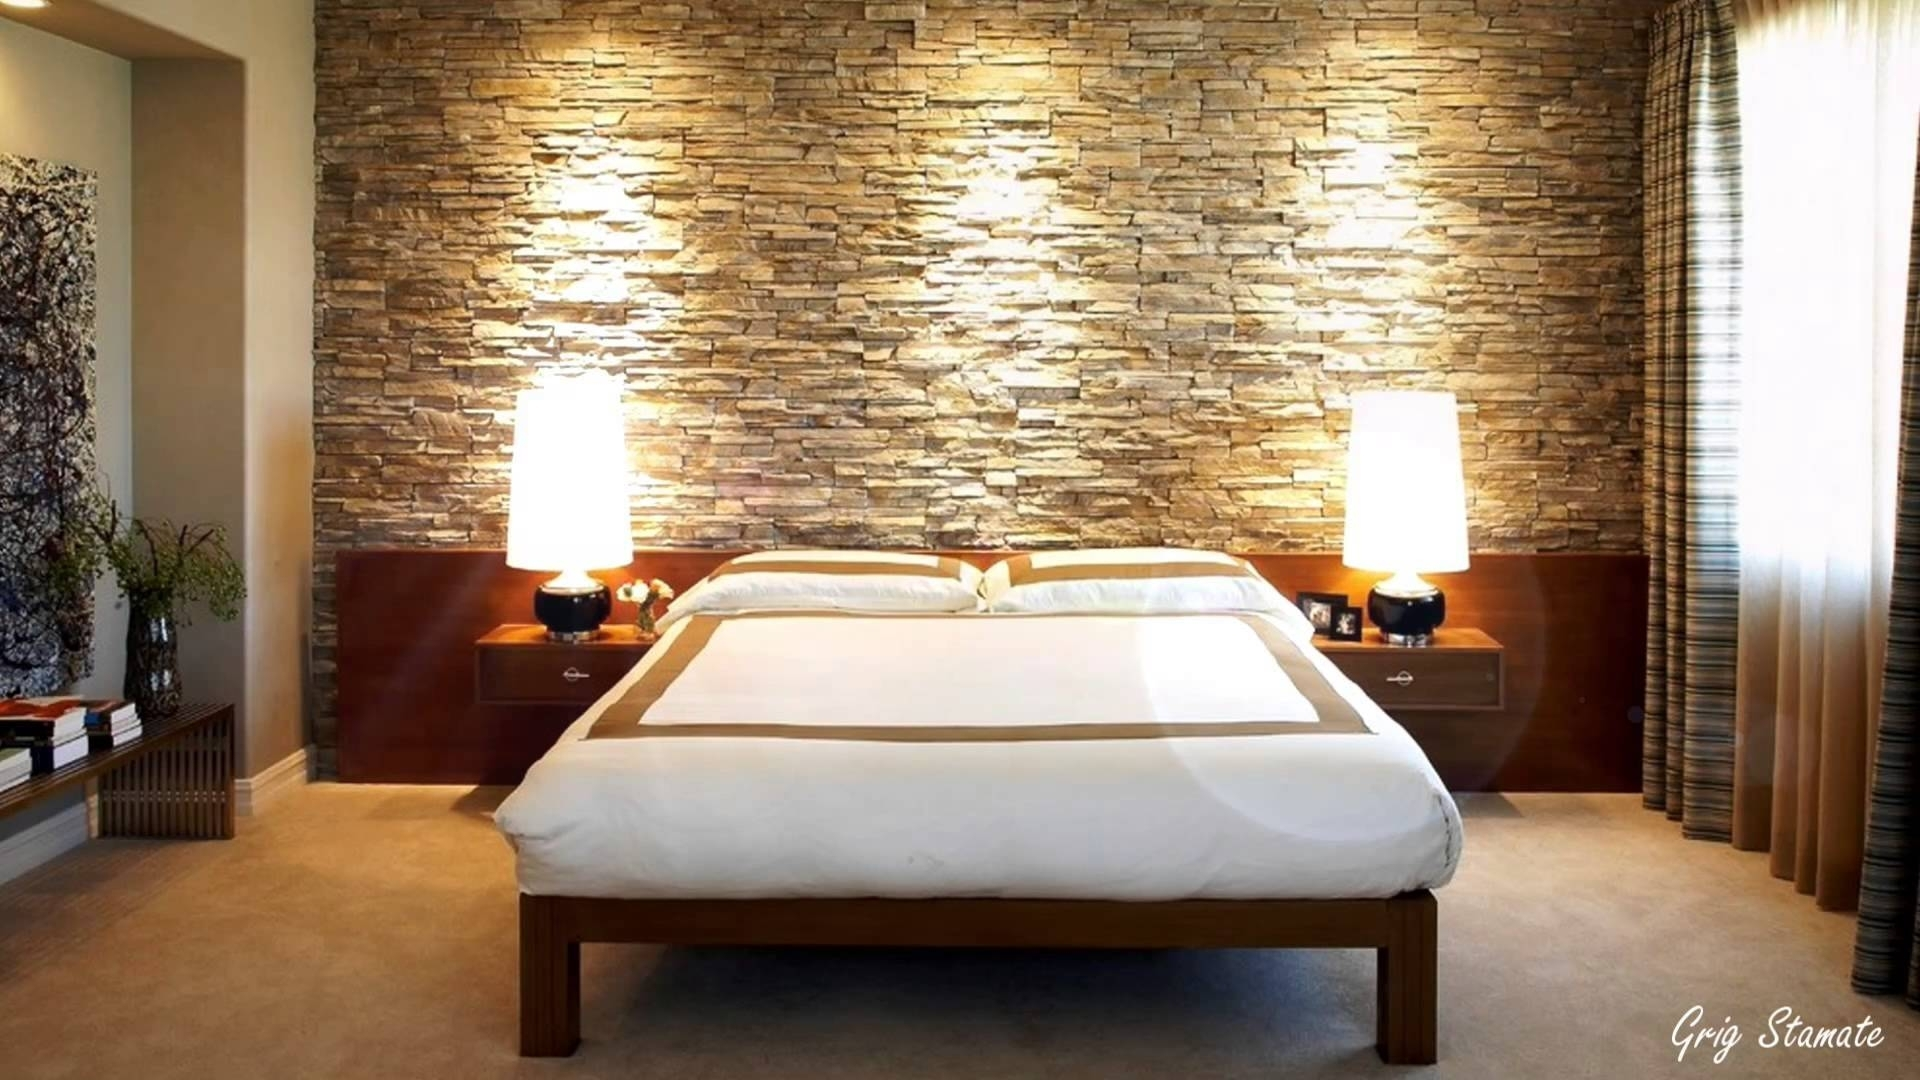 Bedroom Ideas : Master Bedroom Wall Decor Best Of Master Bedroom Within Recent Wall Accents Behind Bed (View 11 of 15)